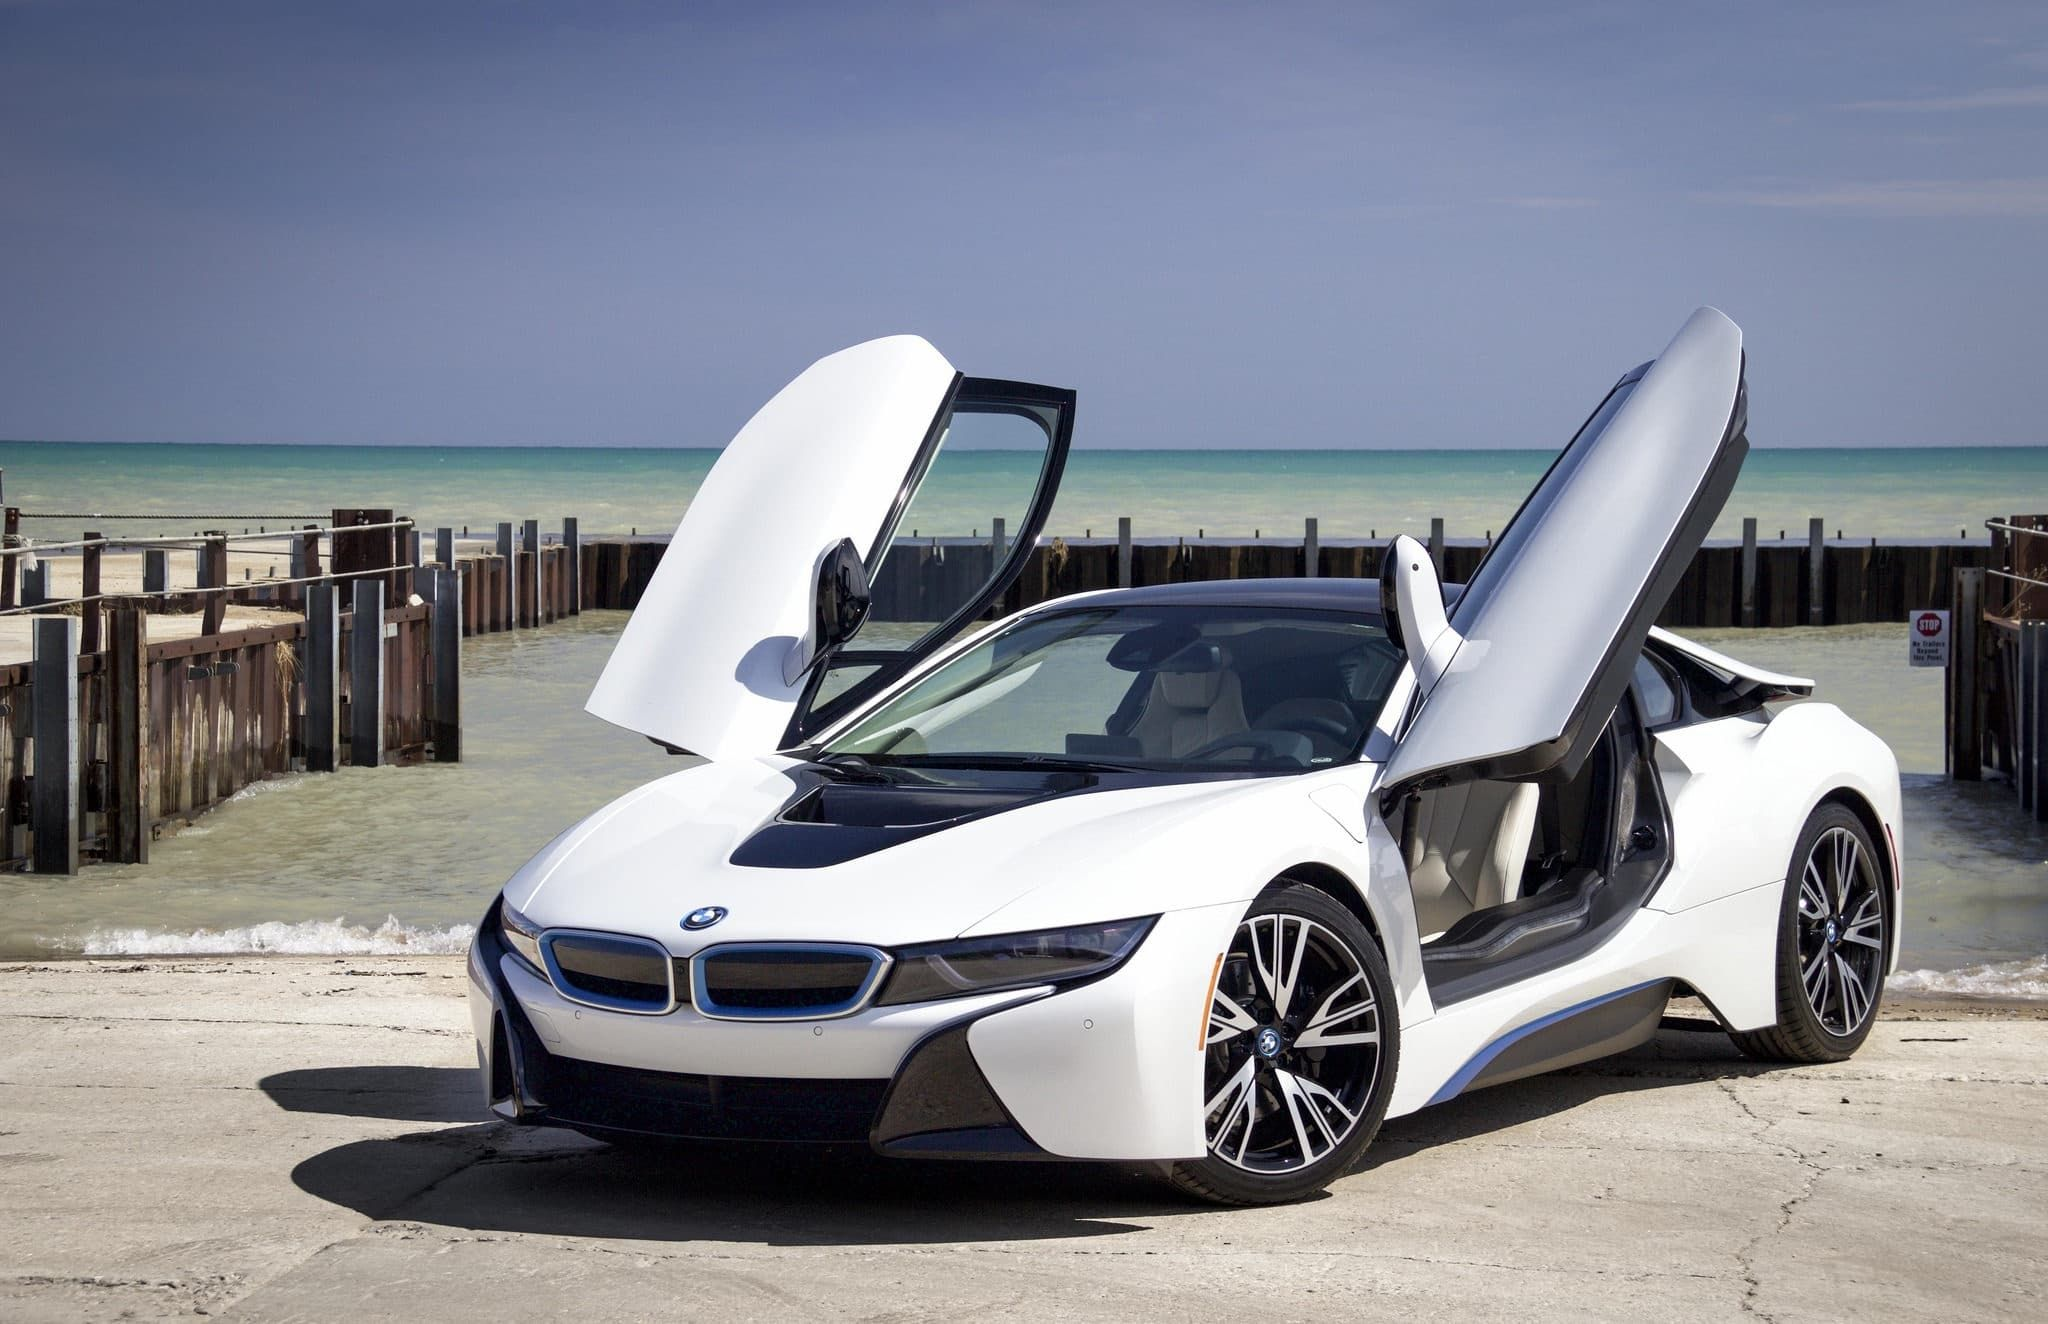 Bmw I8 2016 White Hd Pictures Sky Sea Supercars Bmw I8 Bmw Cars